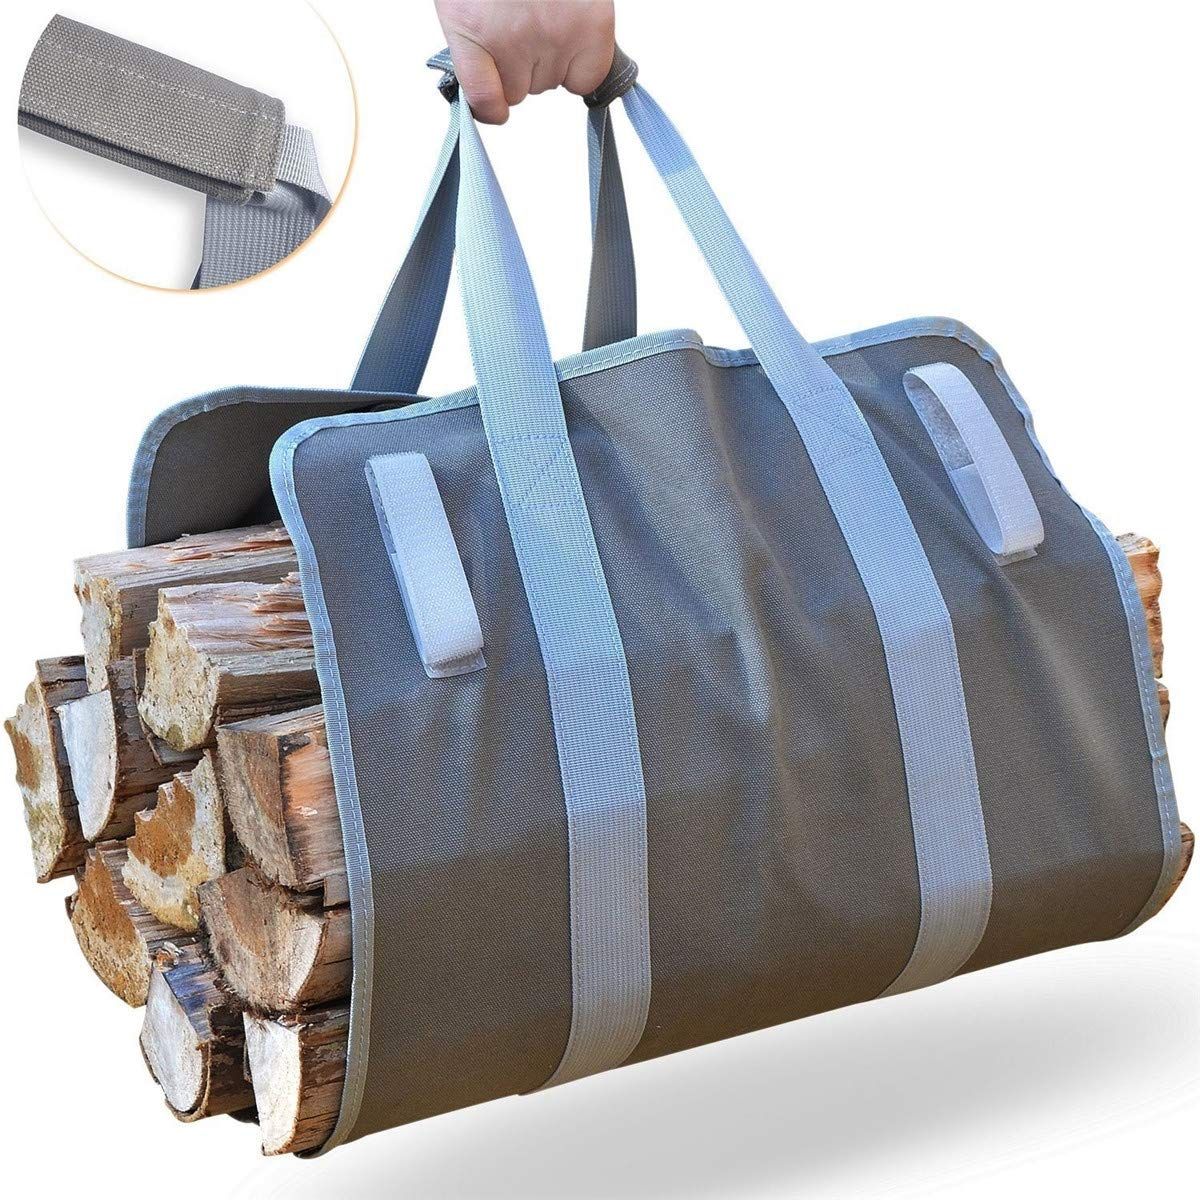 CocinaCo Firewood Carrier Log Carrier Wood Carrying Bag for Fireplace 16oz Waxed Canvas